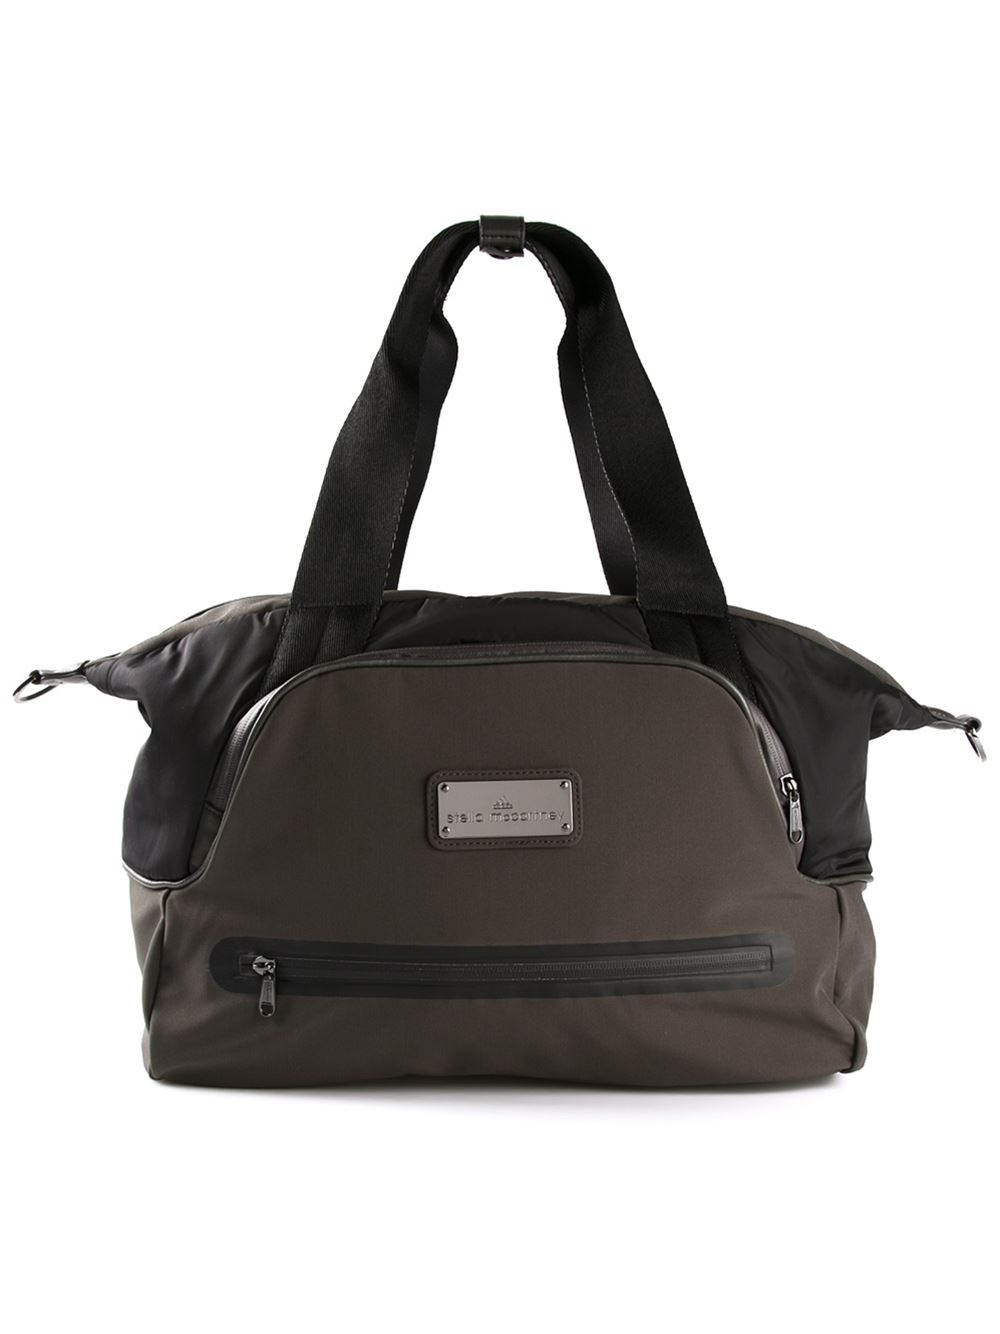 2229c97f4786 ... Lyst - Adidas By Stella Mccartney Iconic Small Tote in Black pick up  84387 532dc ...